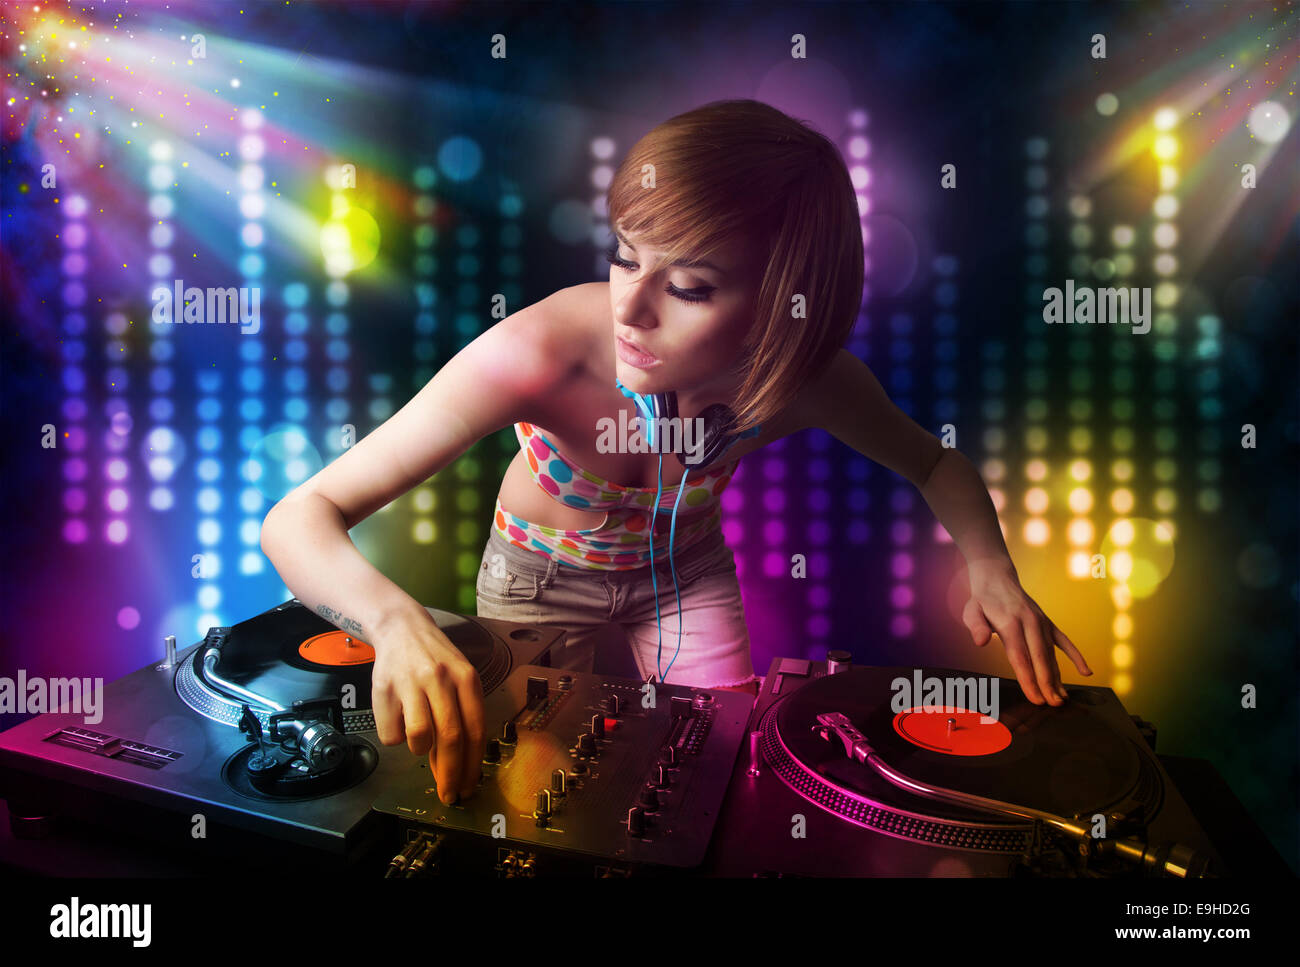 3d Effect Live Wallpapers Dj Girl Playing Songs In A Disco With Light Show Stock